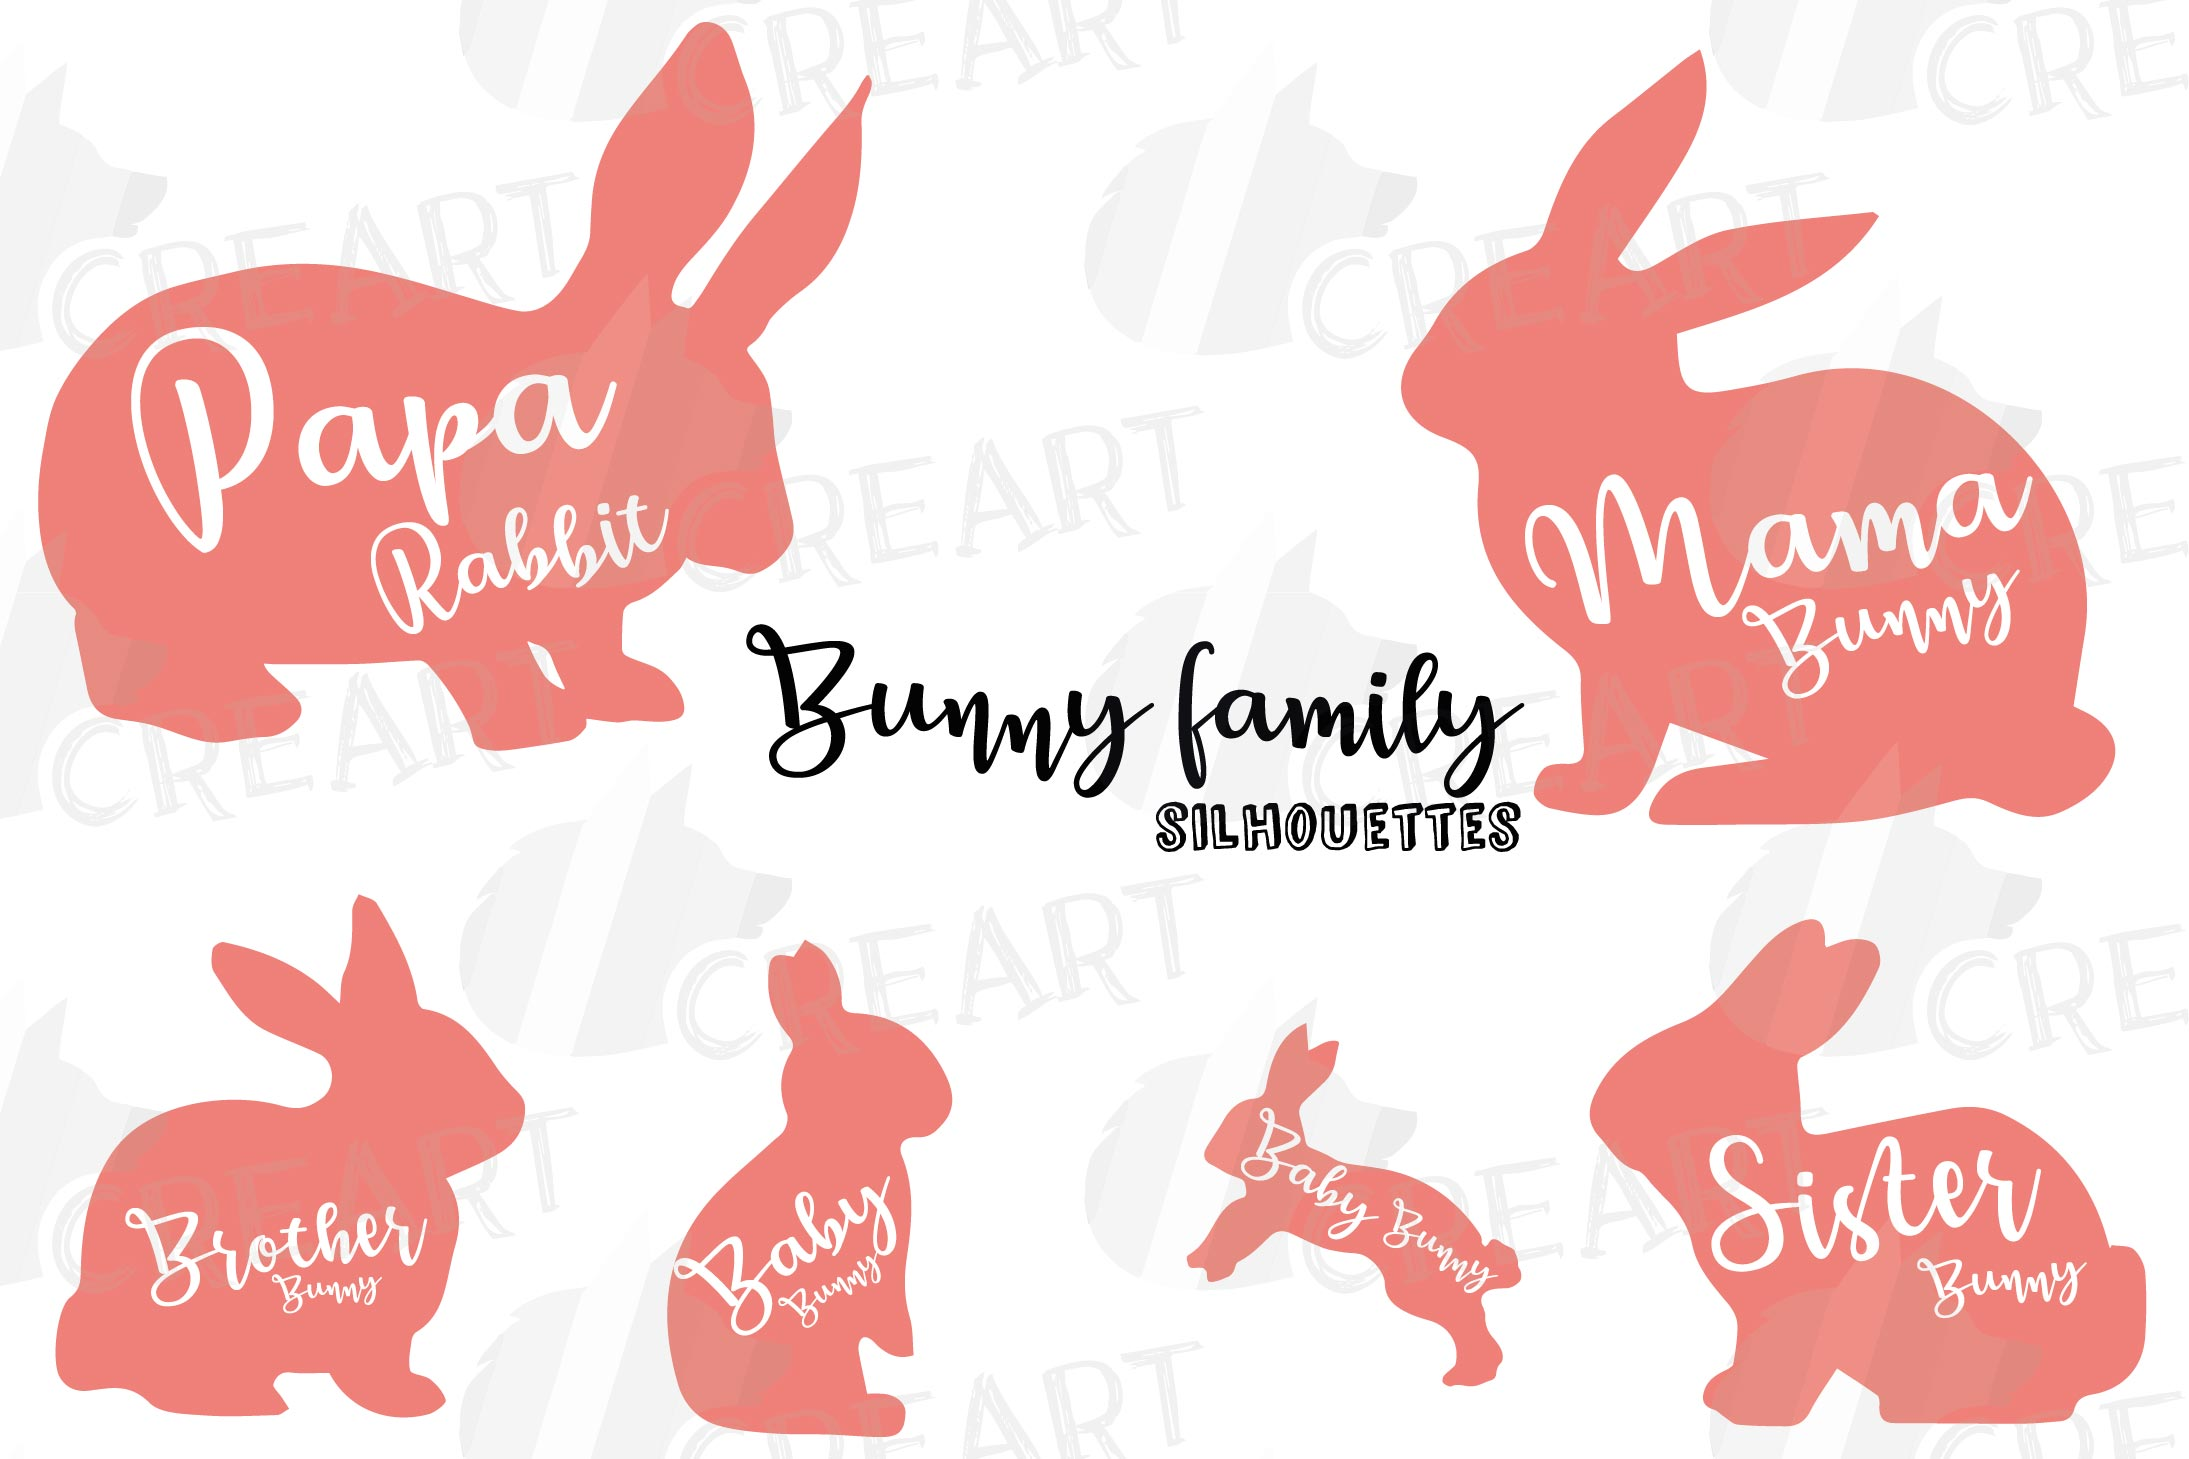 Rabbit family silhouettes, bunny silhouette svg cutting file example image 2